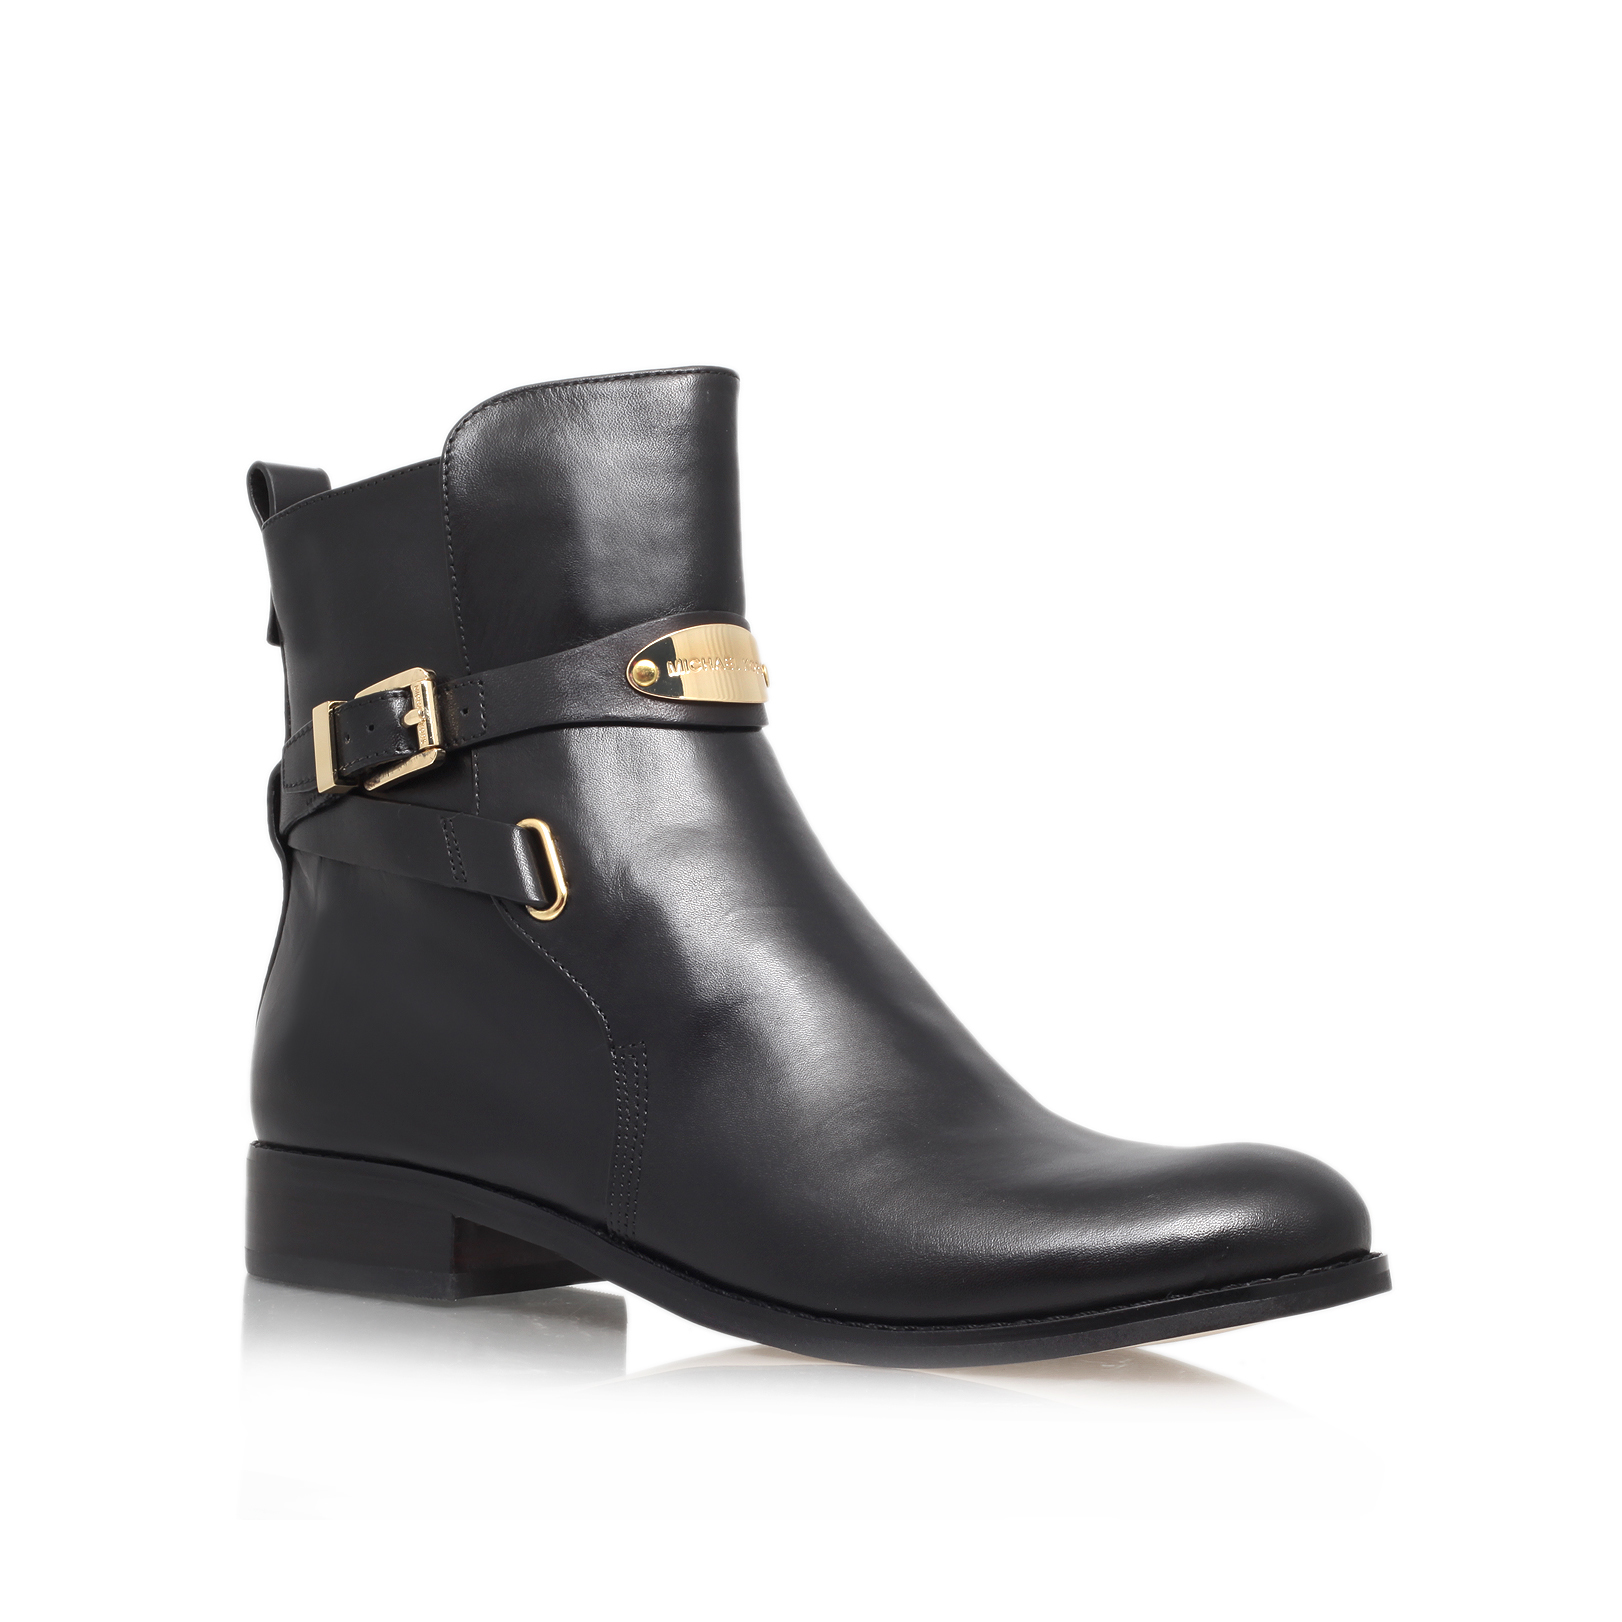 ARLEY ANKLE BOOT